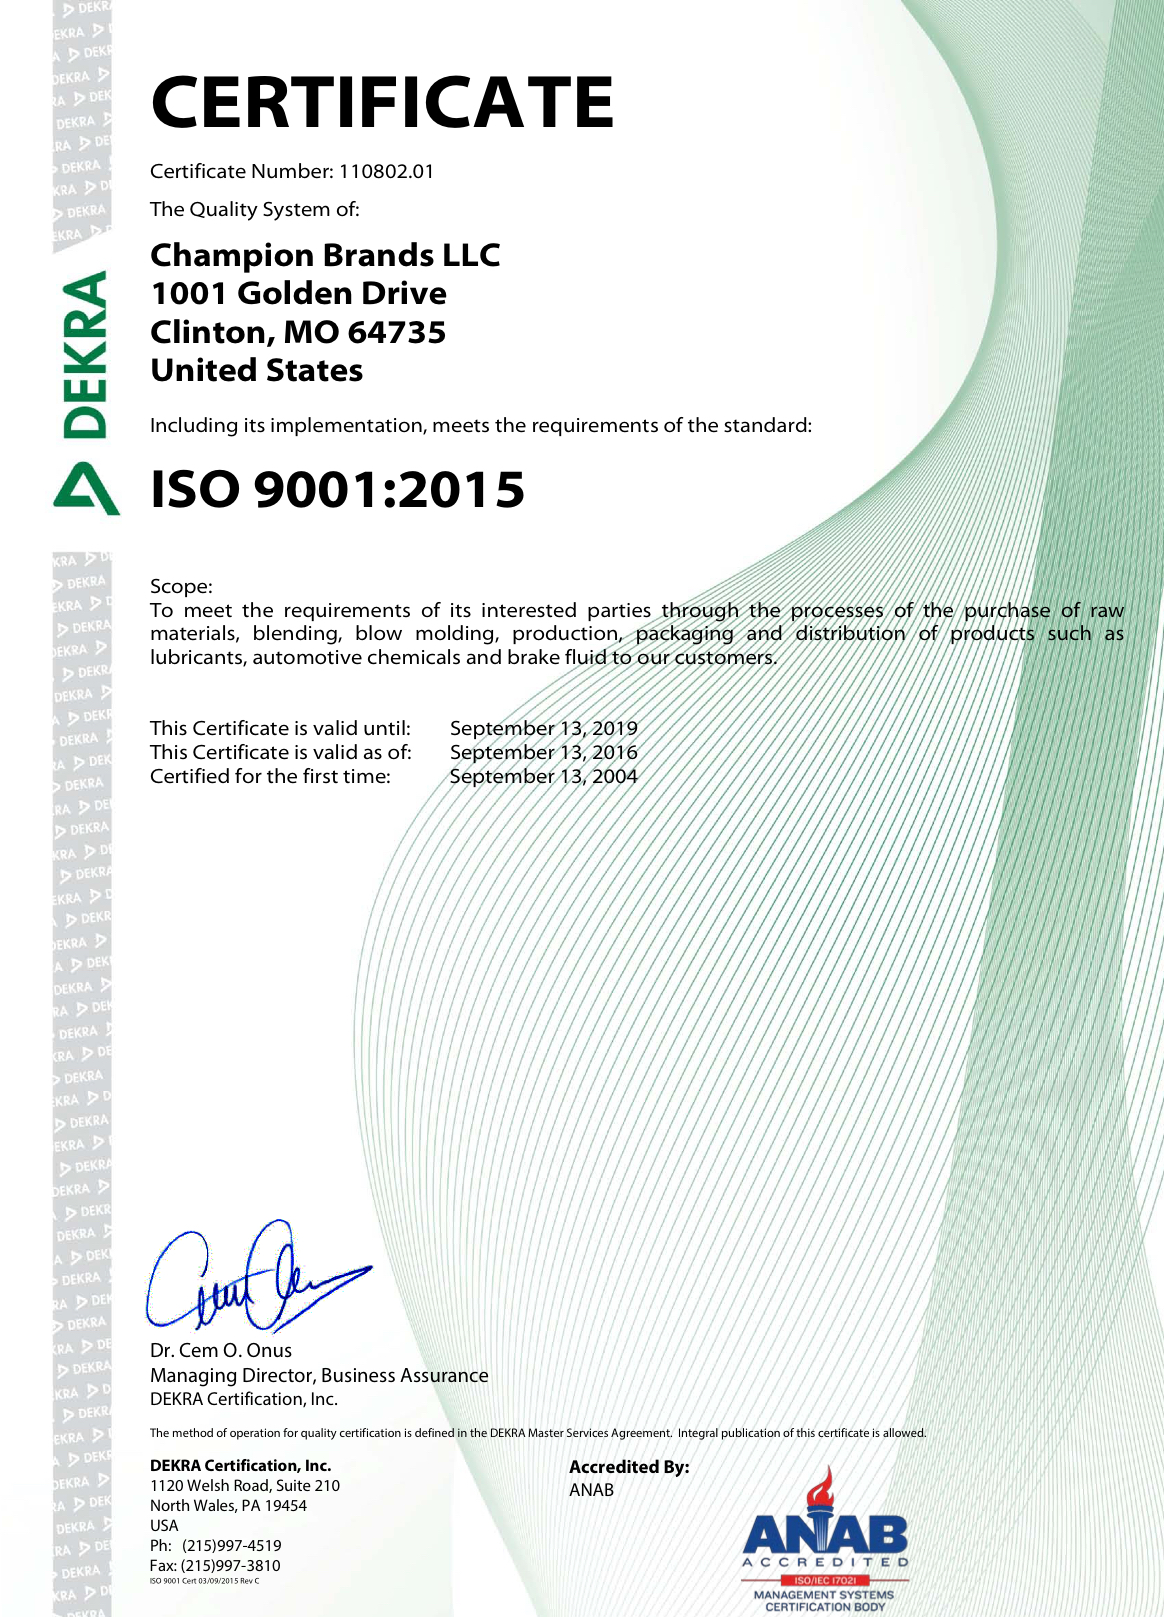 Champion Brands, LLC Achieves Newest ISO 9001-2015 Certifica